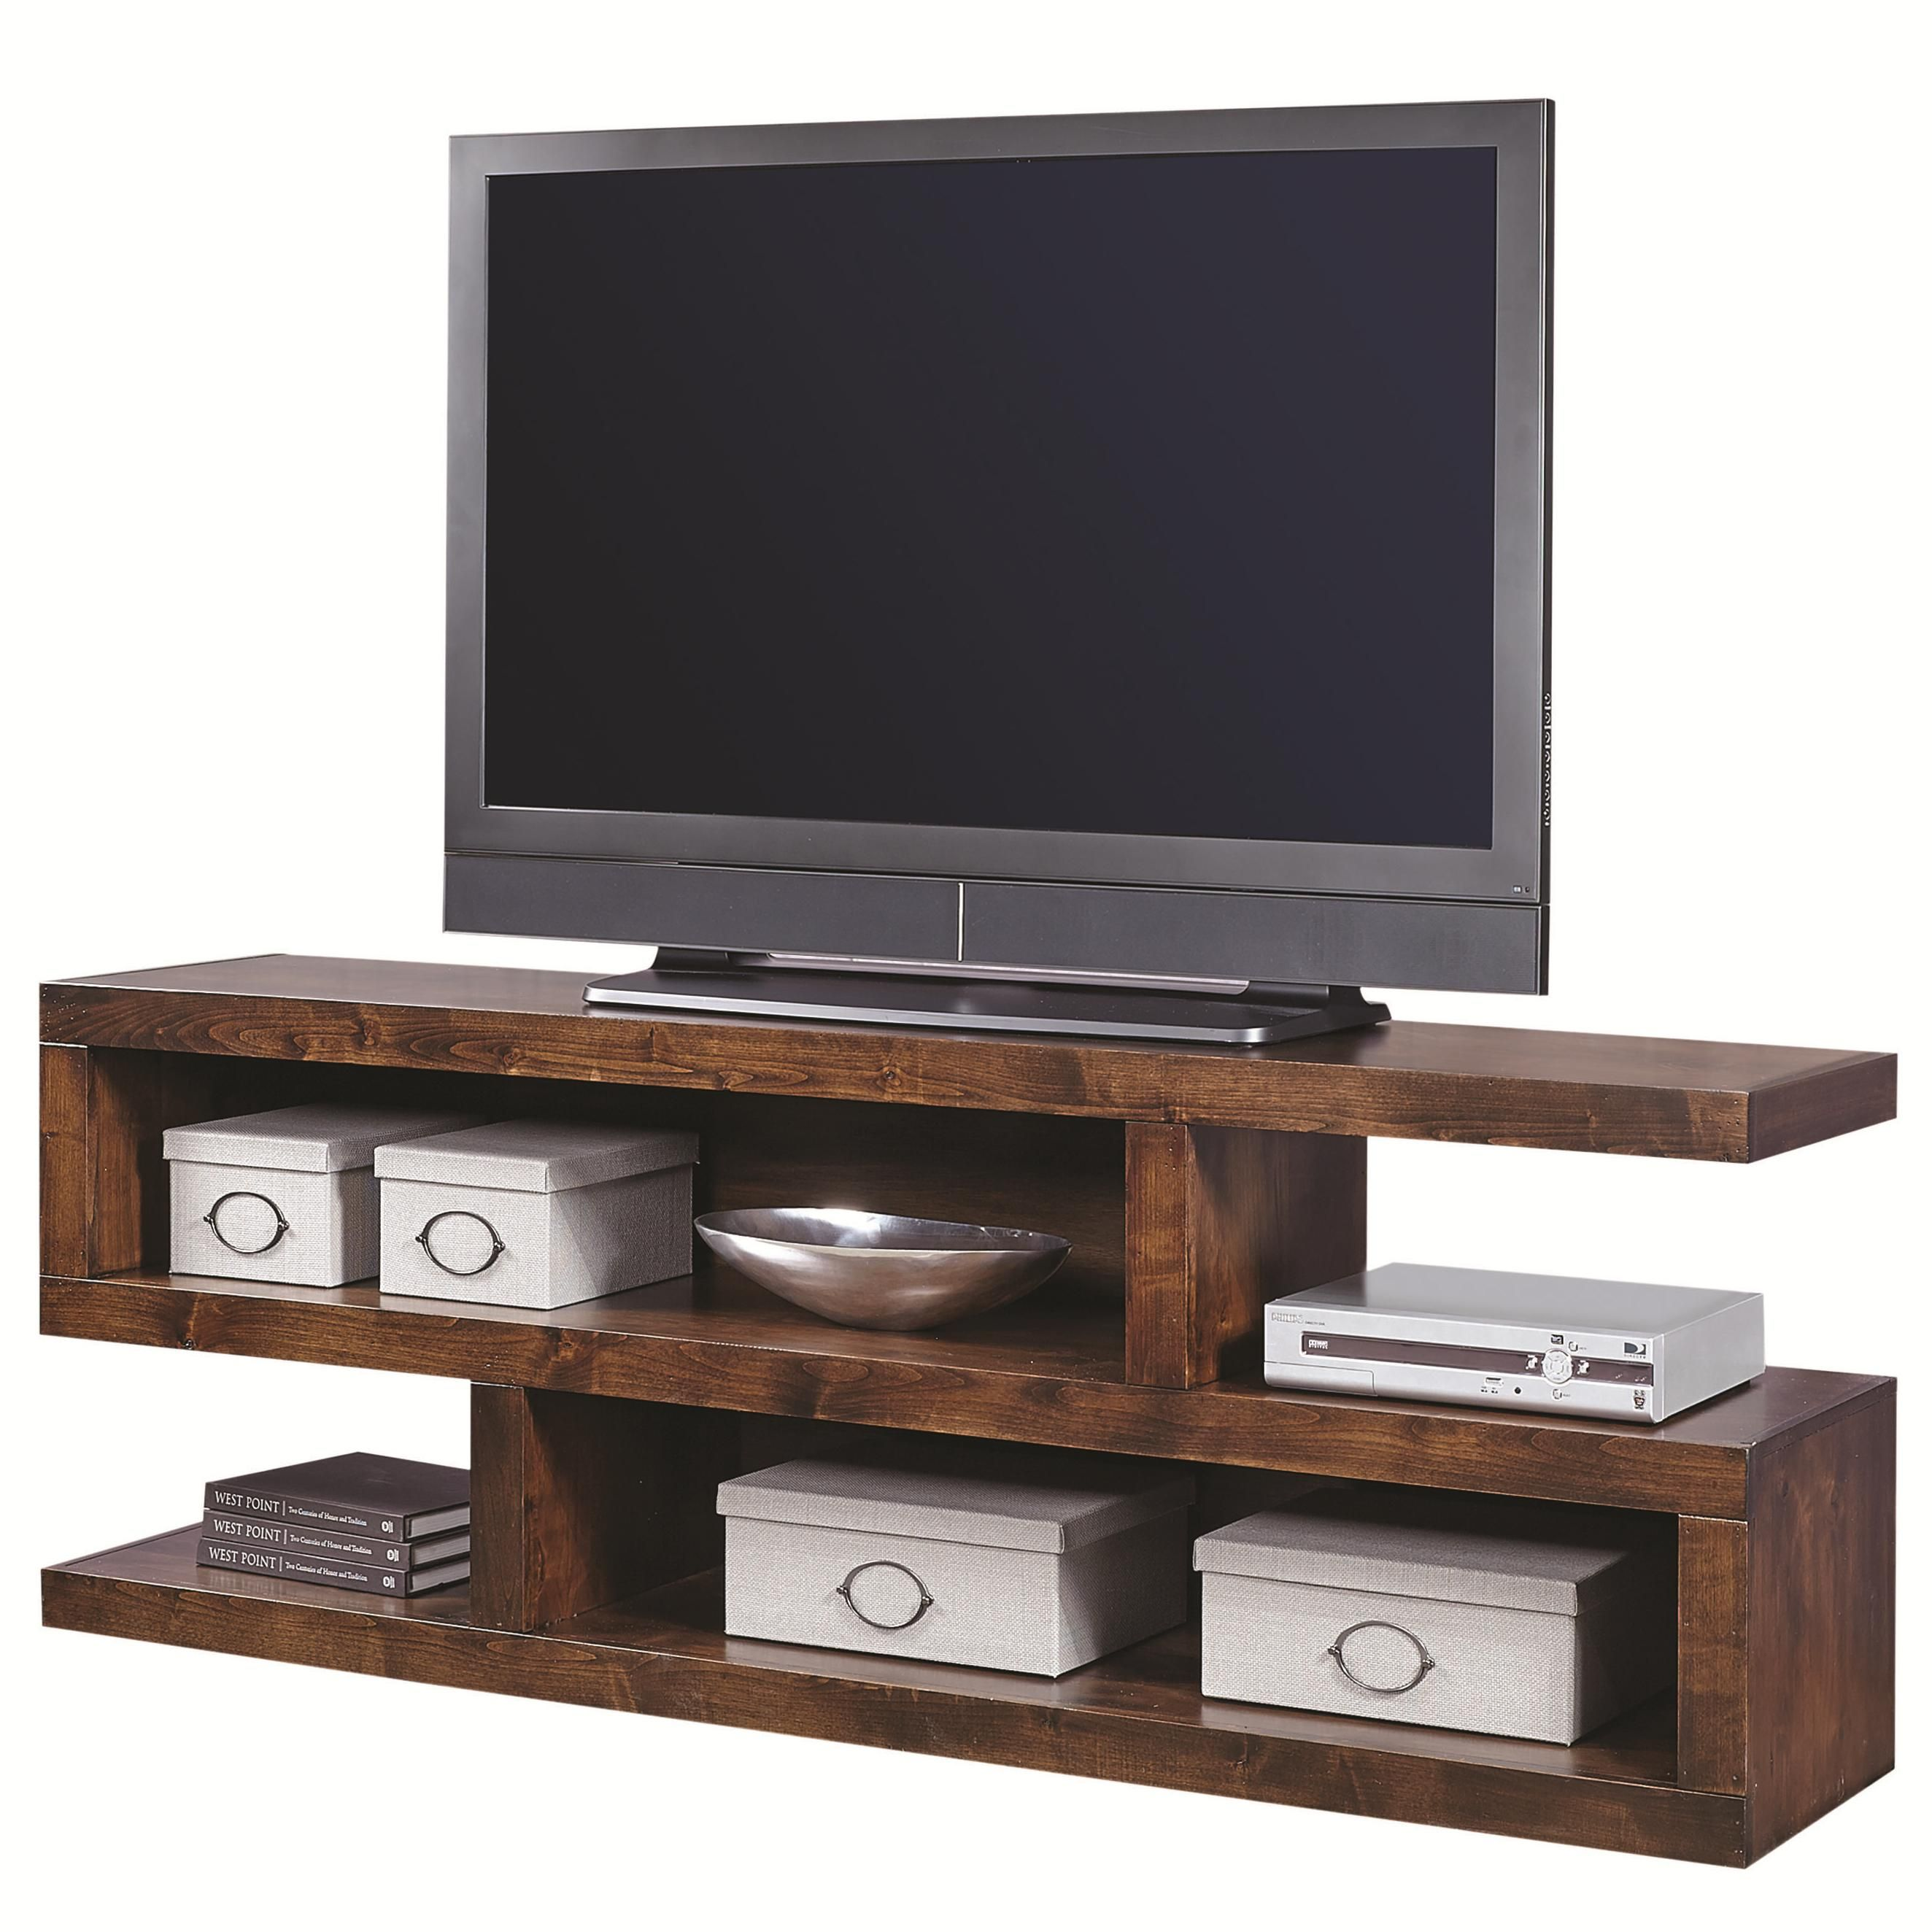 Contemporary alder inch open console with compartments by